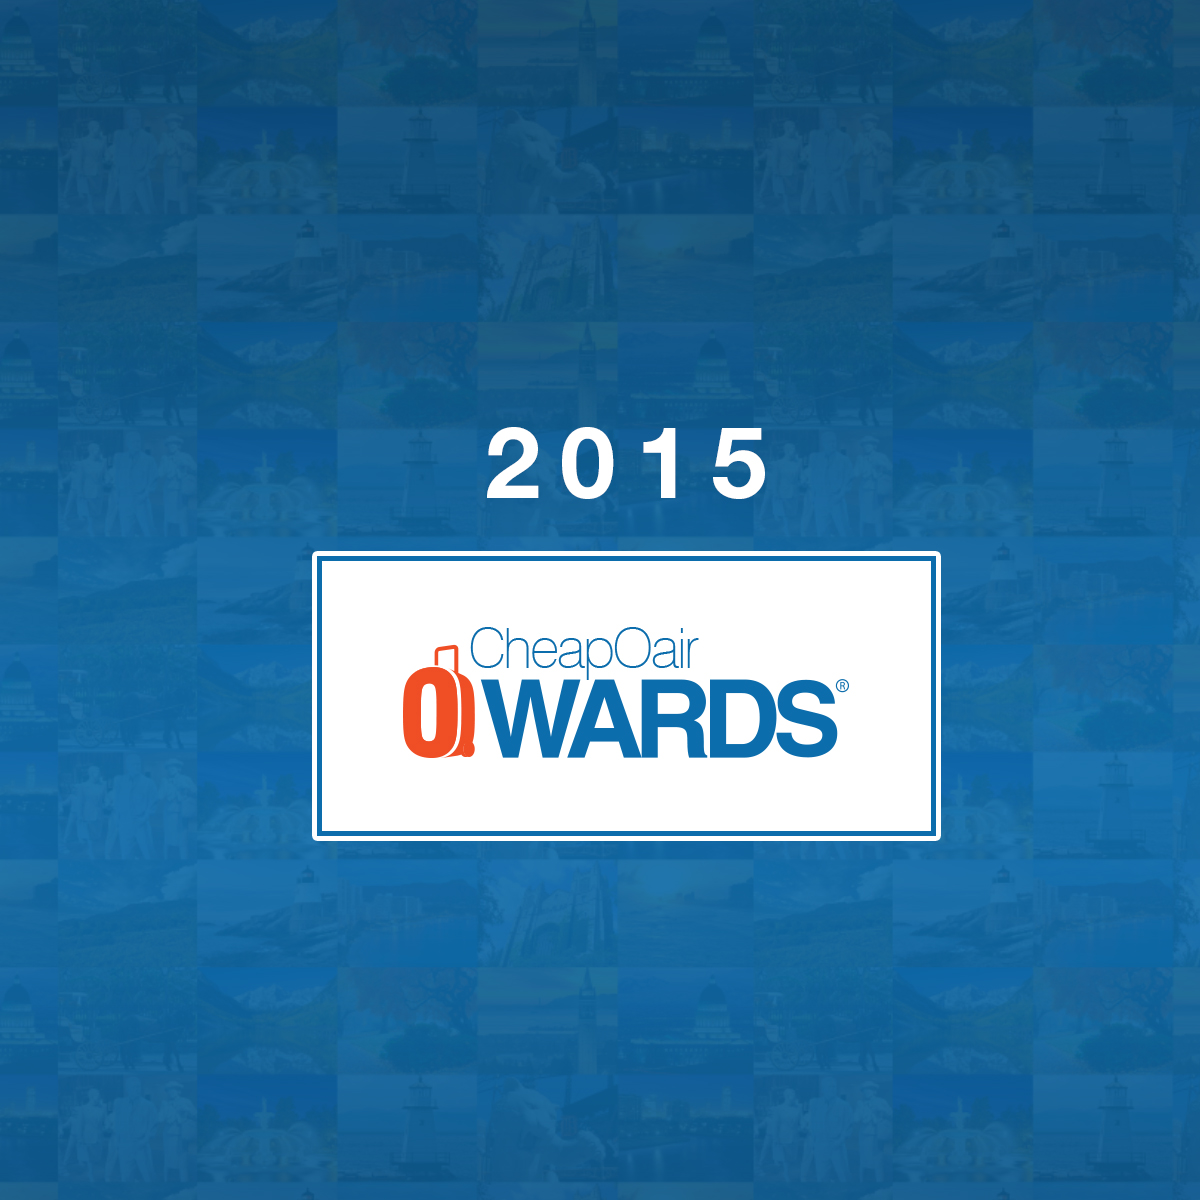 CheapOair Announces Inaugural CheapOair Owards Finalists